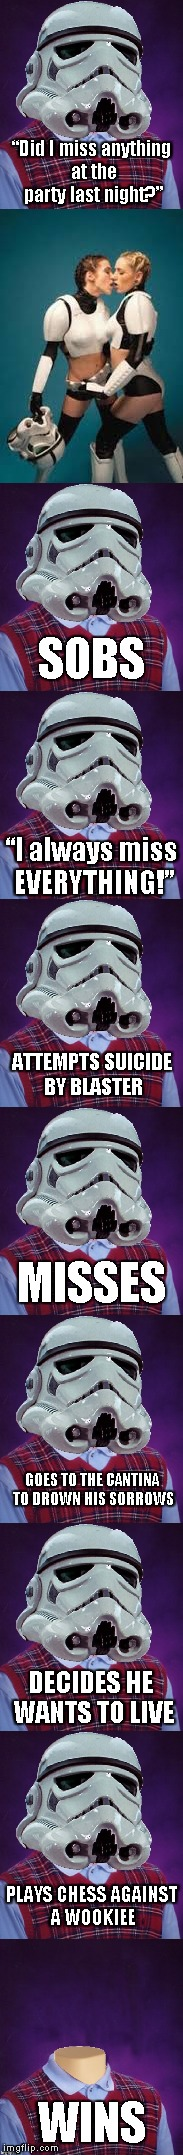 "Jumping on the long meme bandwagon... Actually, it's not my first... | ""Did I miss anything at the party last night?"" WINS SOBS ""I always miss EVERYTHING!"" ATTEMPTS SUICIDE BY BLASTER MISSES GOES TO THE CANTINA  